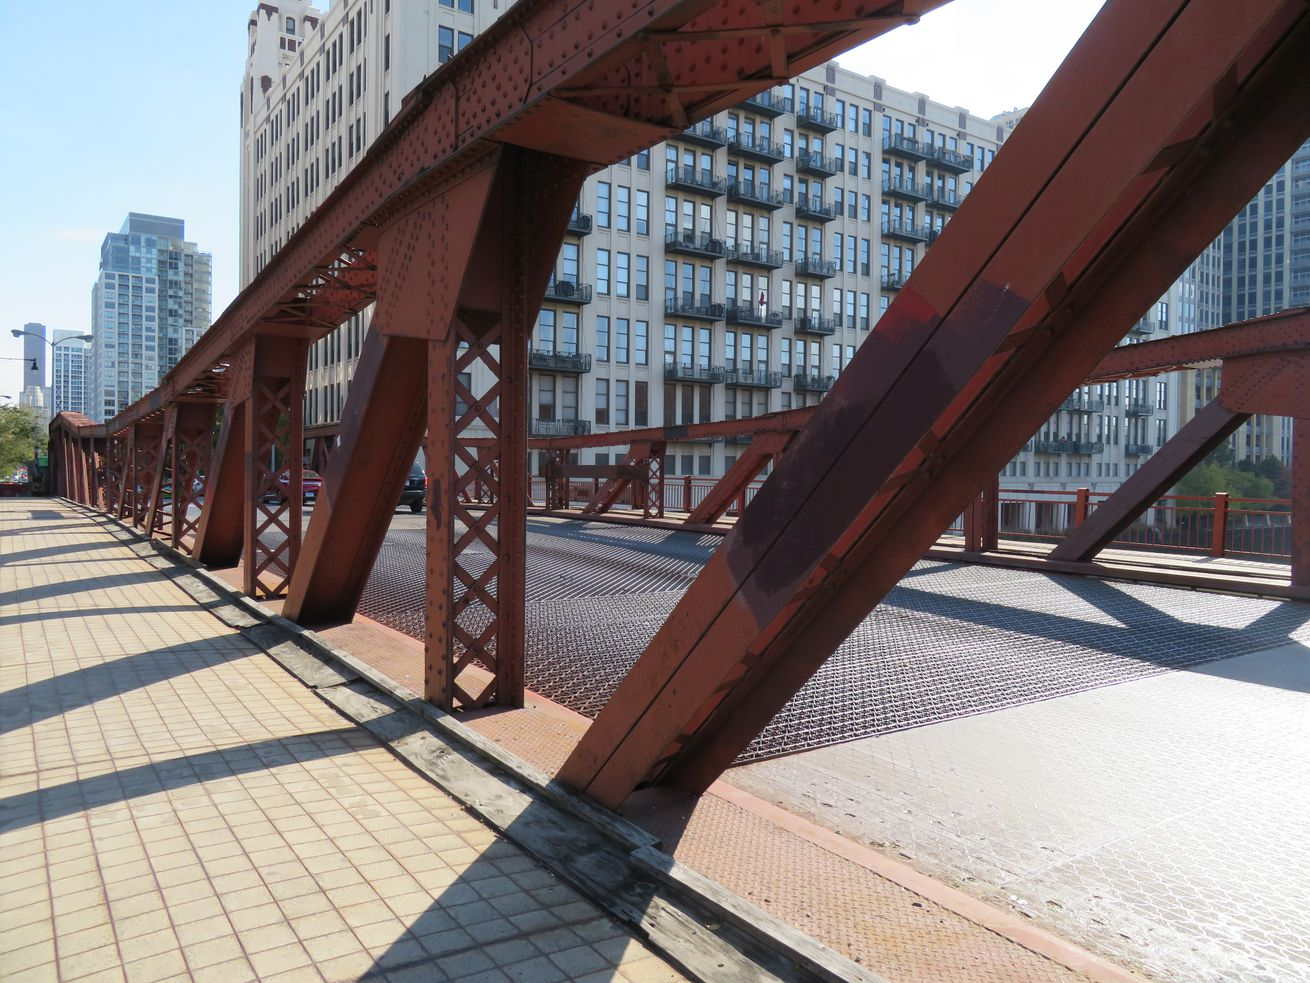 The days are numbered for the 104-year-old Chicago Avenue bridge.